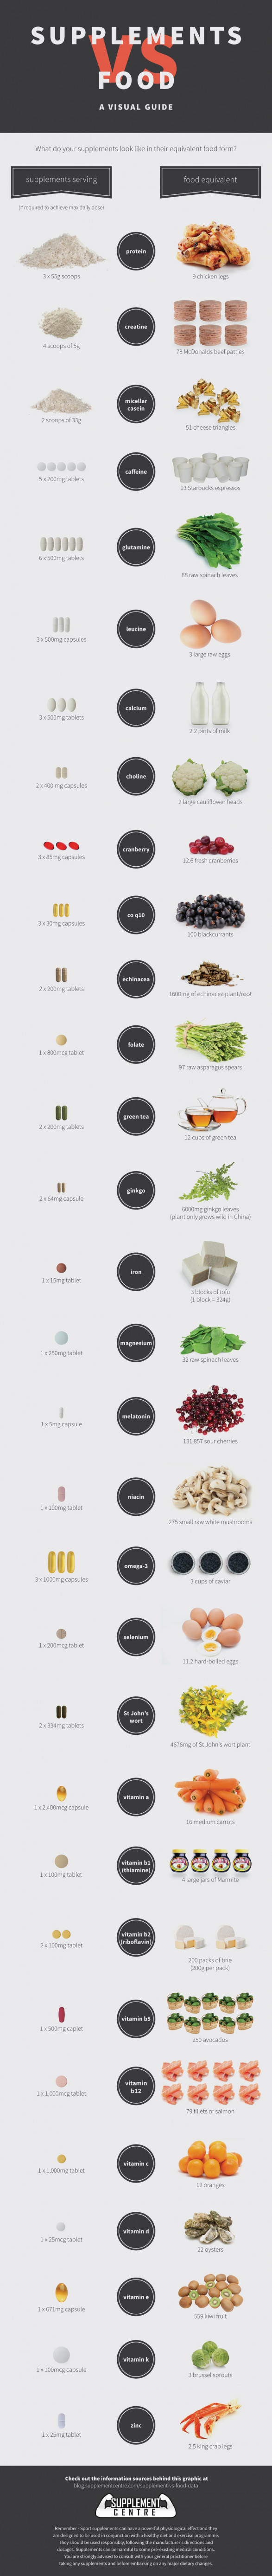 Supplements Vs Food - A Visual Guide